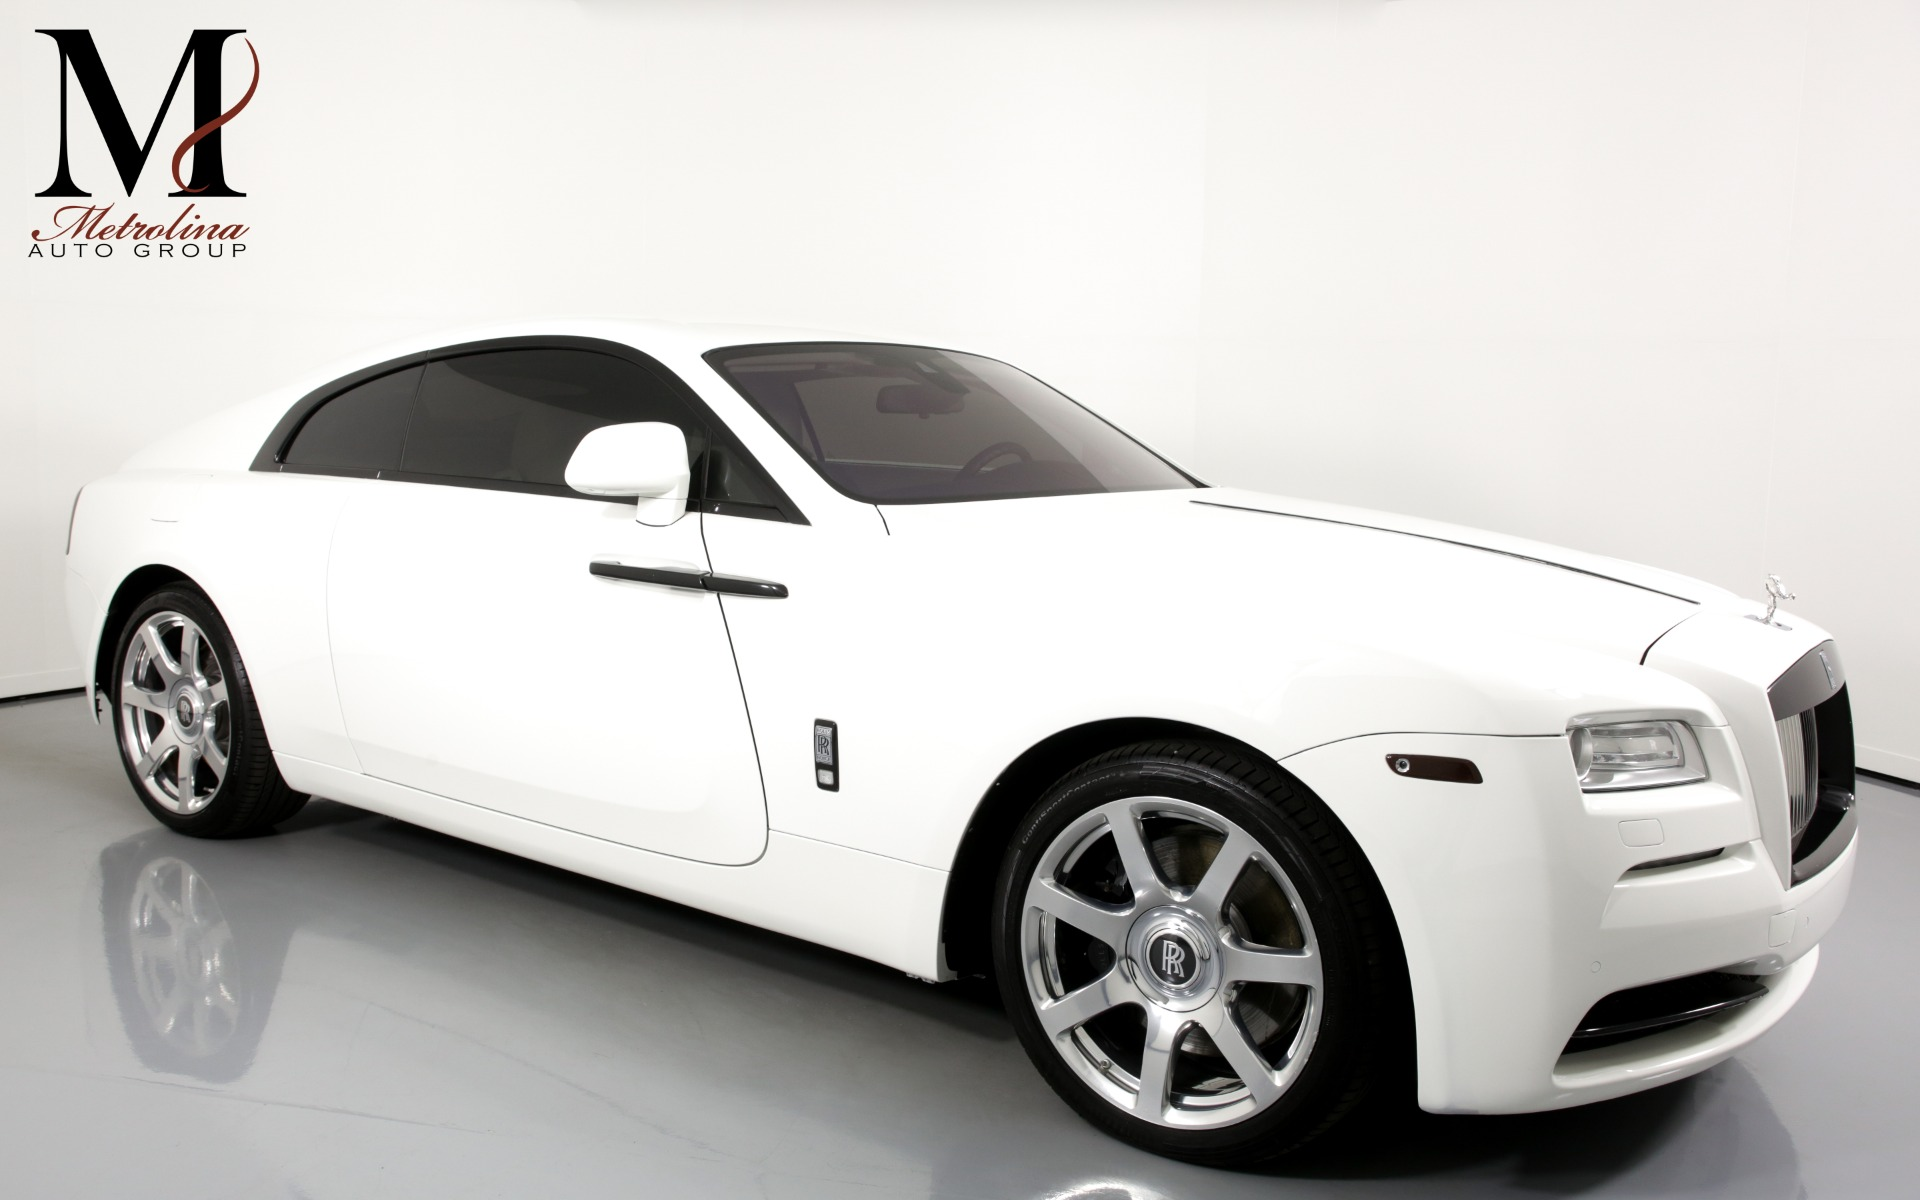 Used 2014 Rolls-Royce Wraith Base 2dr Coupe for sale Sold at Metrolina Auto Group in Charlotte NC 28217 - 1